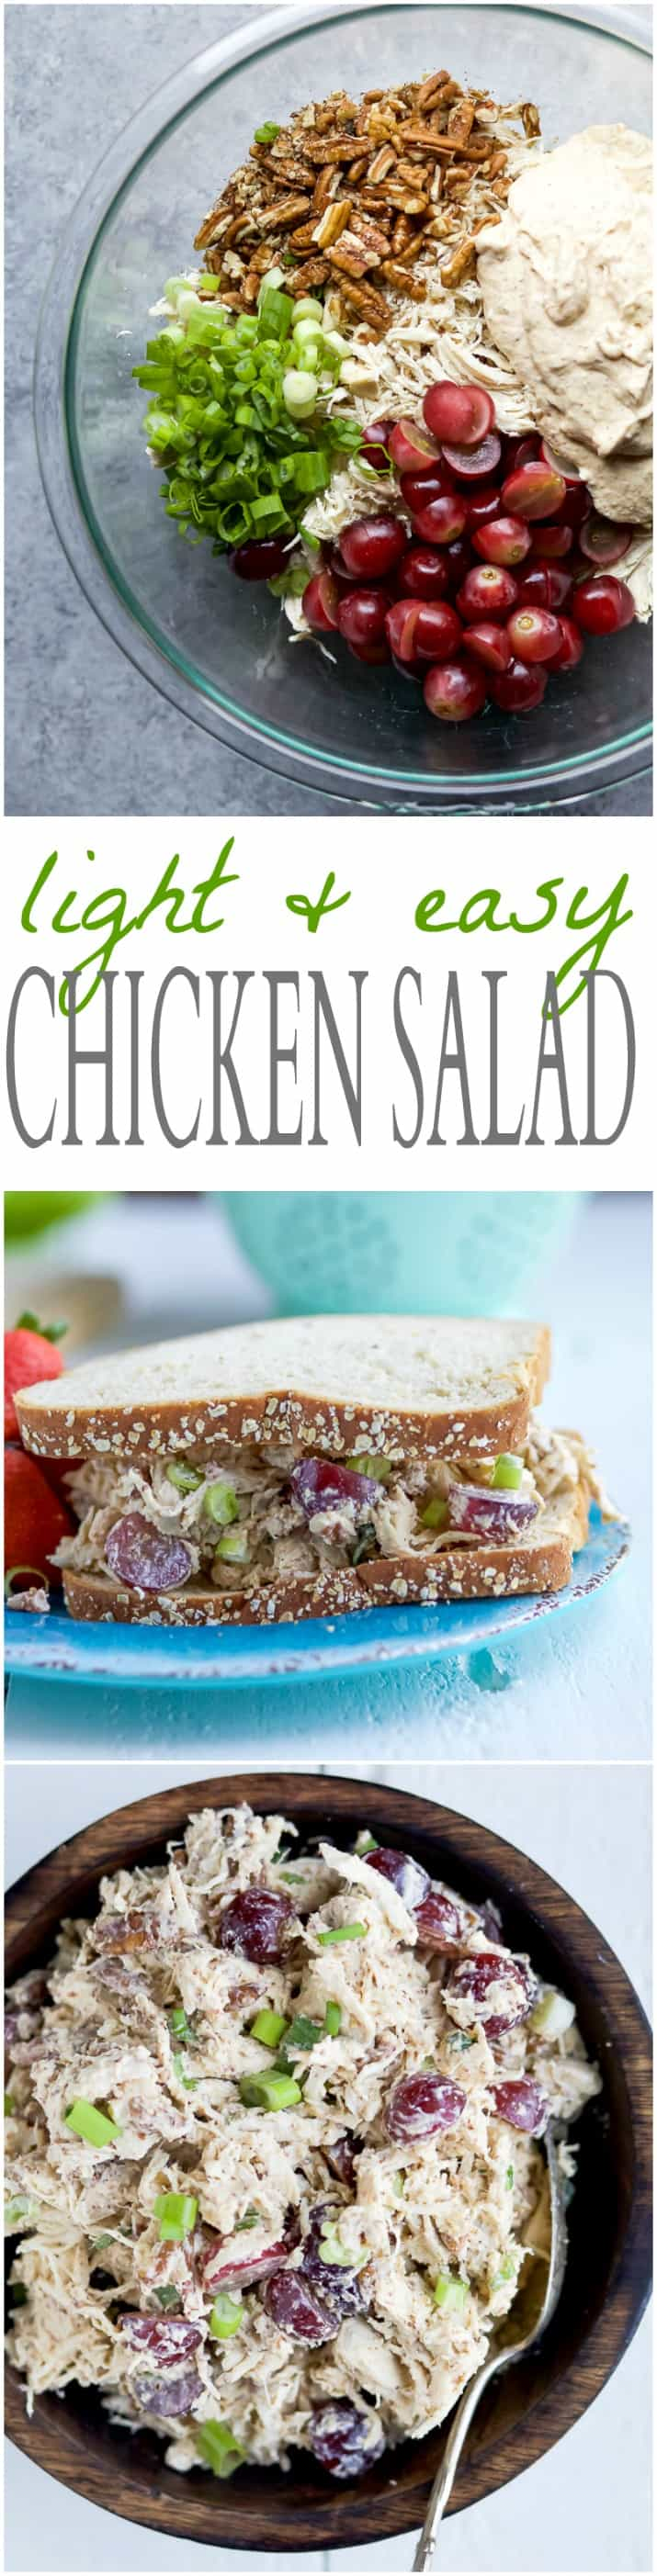 light easy chicken salad recipe easy healthy recipes using real ingredients. Black Bedroom Furniture Sets. Home Design Ideas